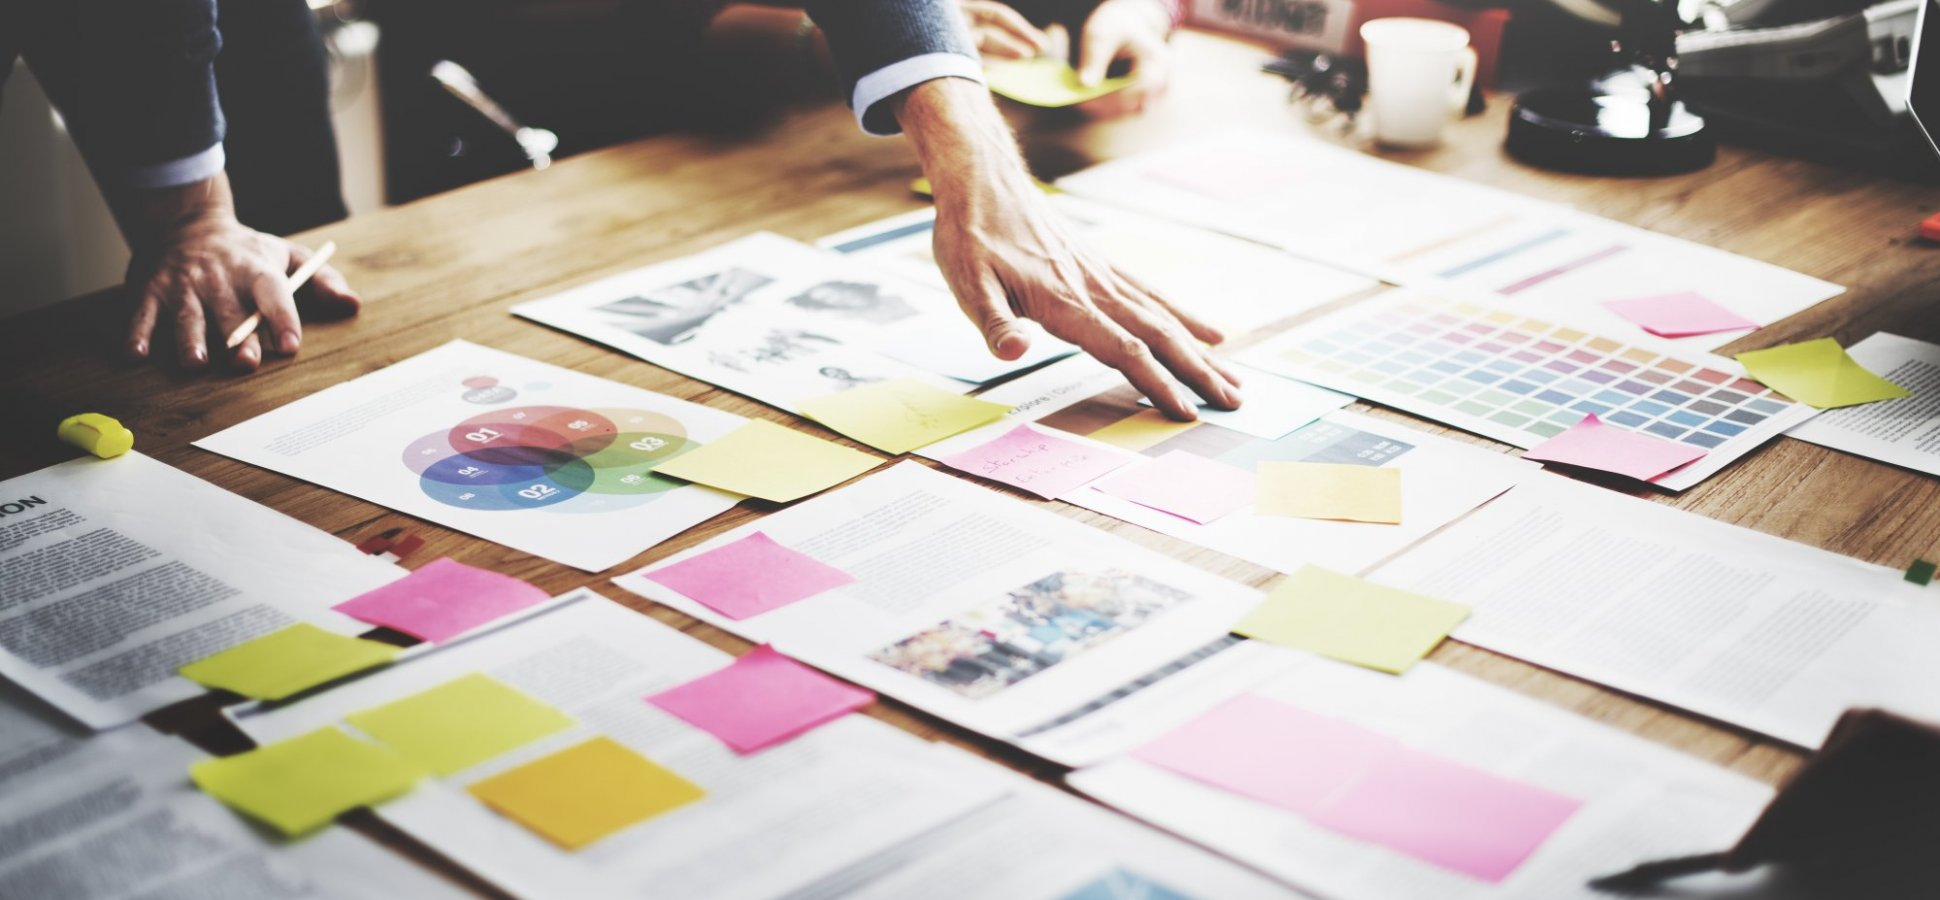 6 Brainstorming Tips to Get Your Creative Juices Flowing